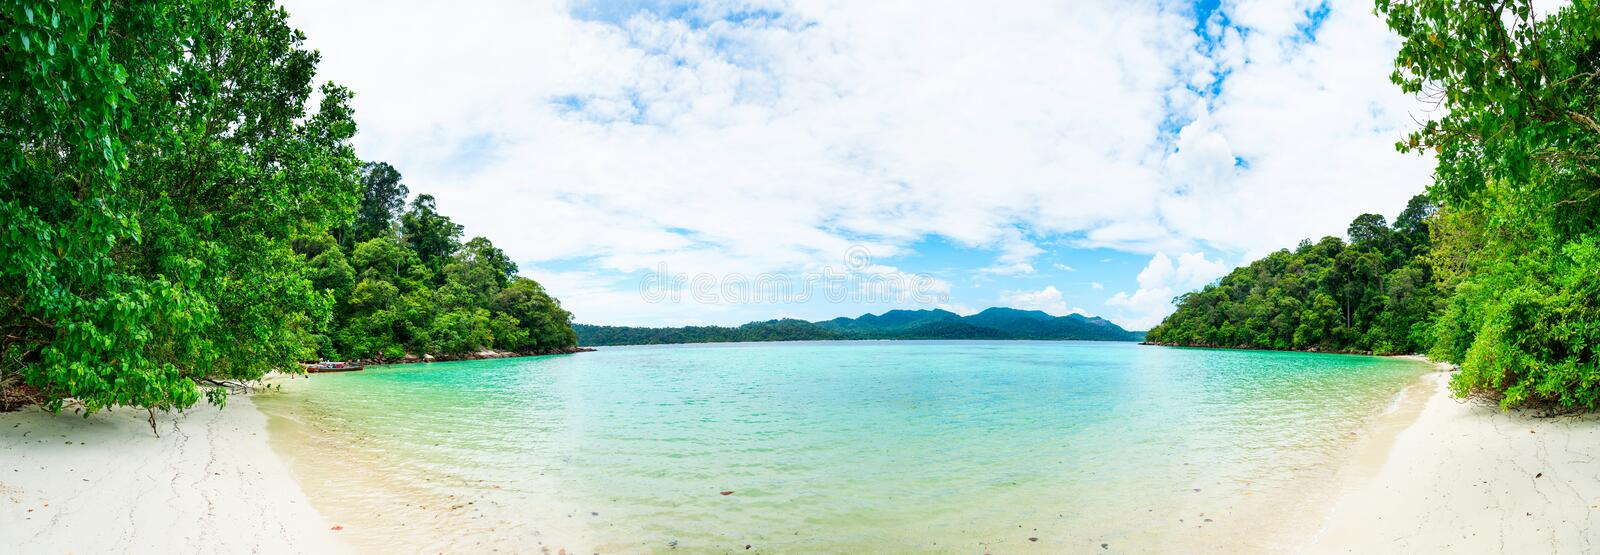 Idyllic tropical clear sea and green island panorama. With sand beach and calm turquoise water royalty free stock images